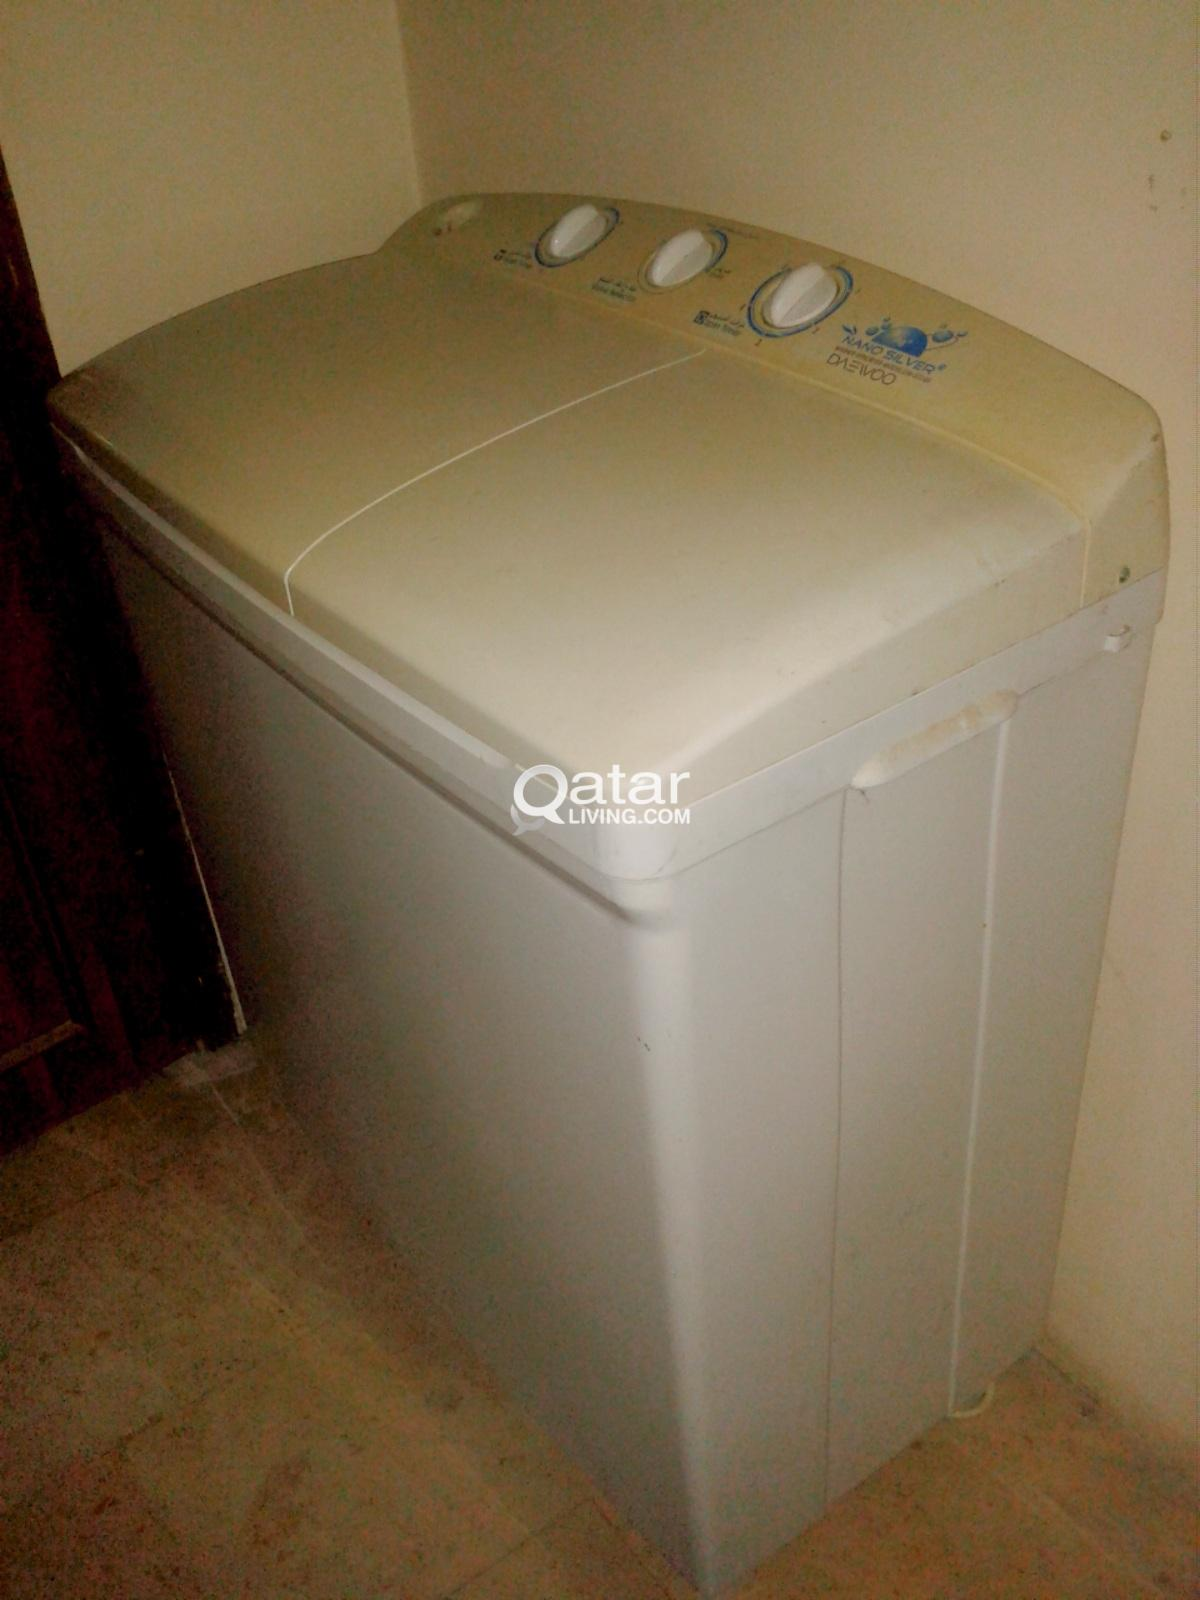 Used Washing Machine For Sale >> Used Washing Machine For Sale Qatar Living